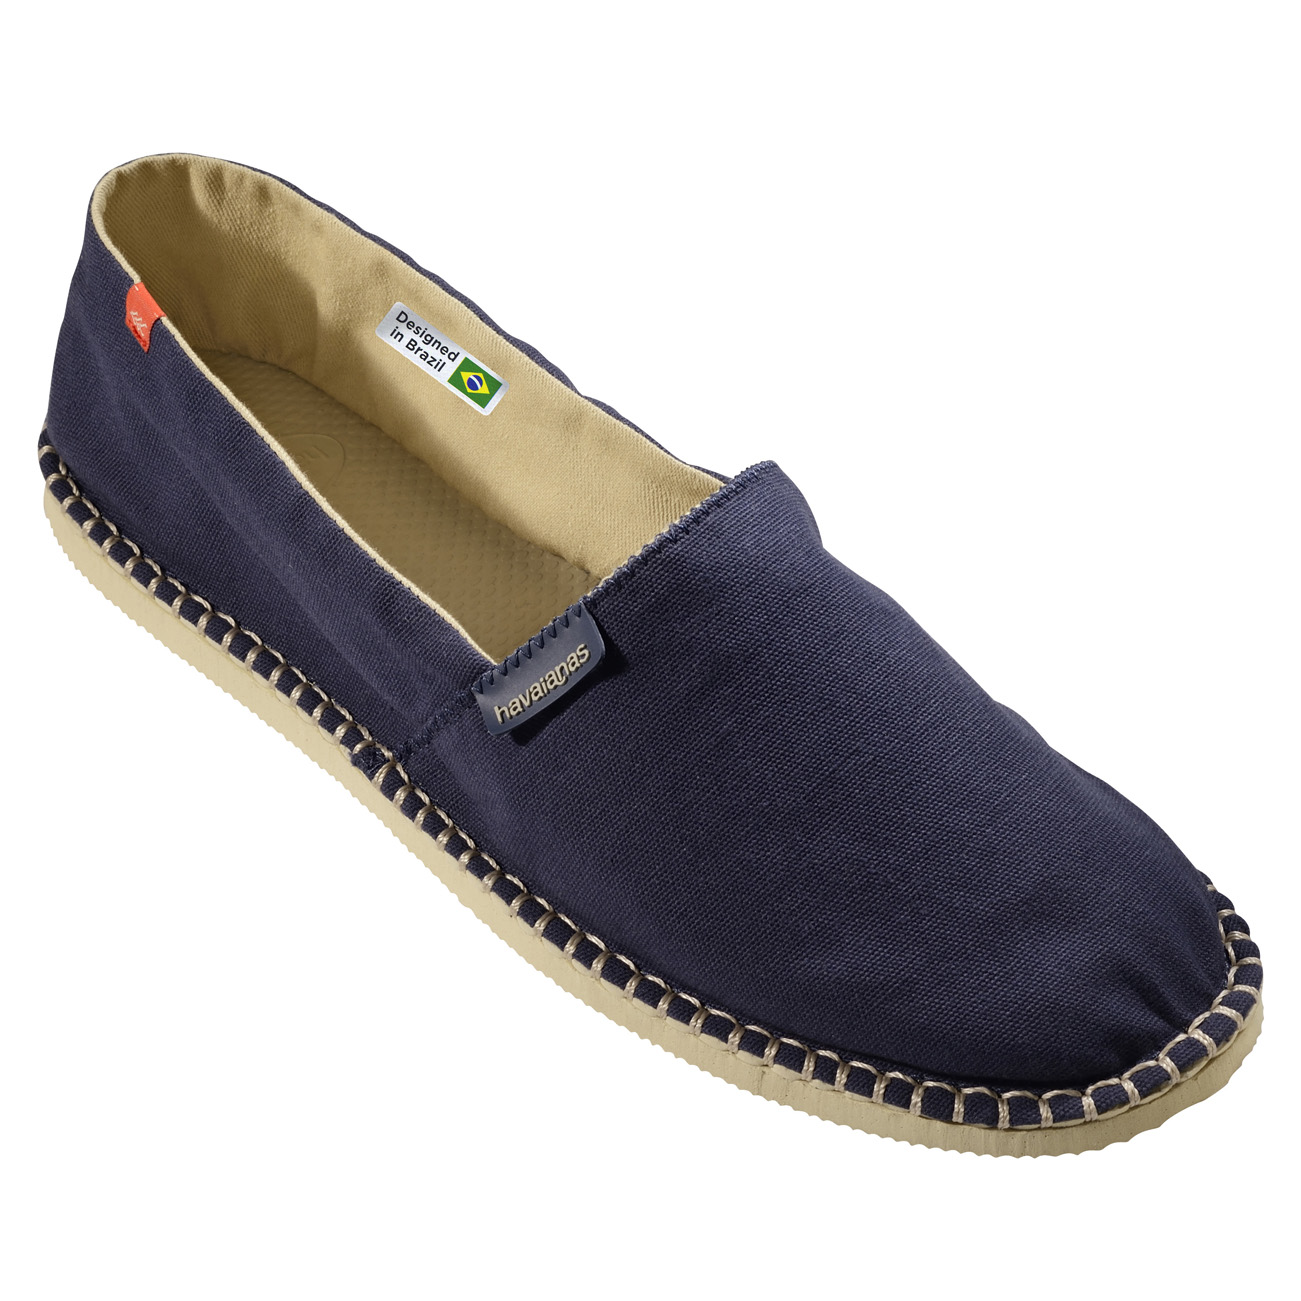 3e940ead6 Ladies Havaianas Origine III Flat Holiday Summer Beach Espadrilles ...